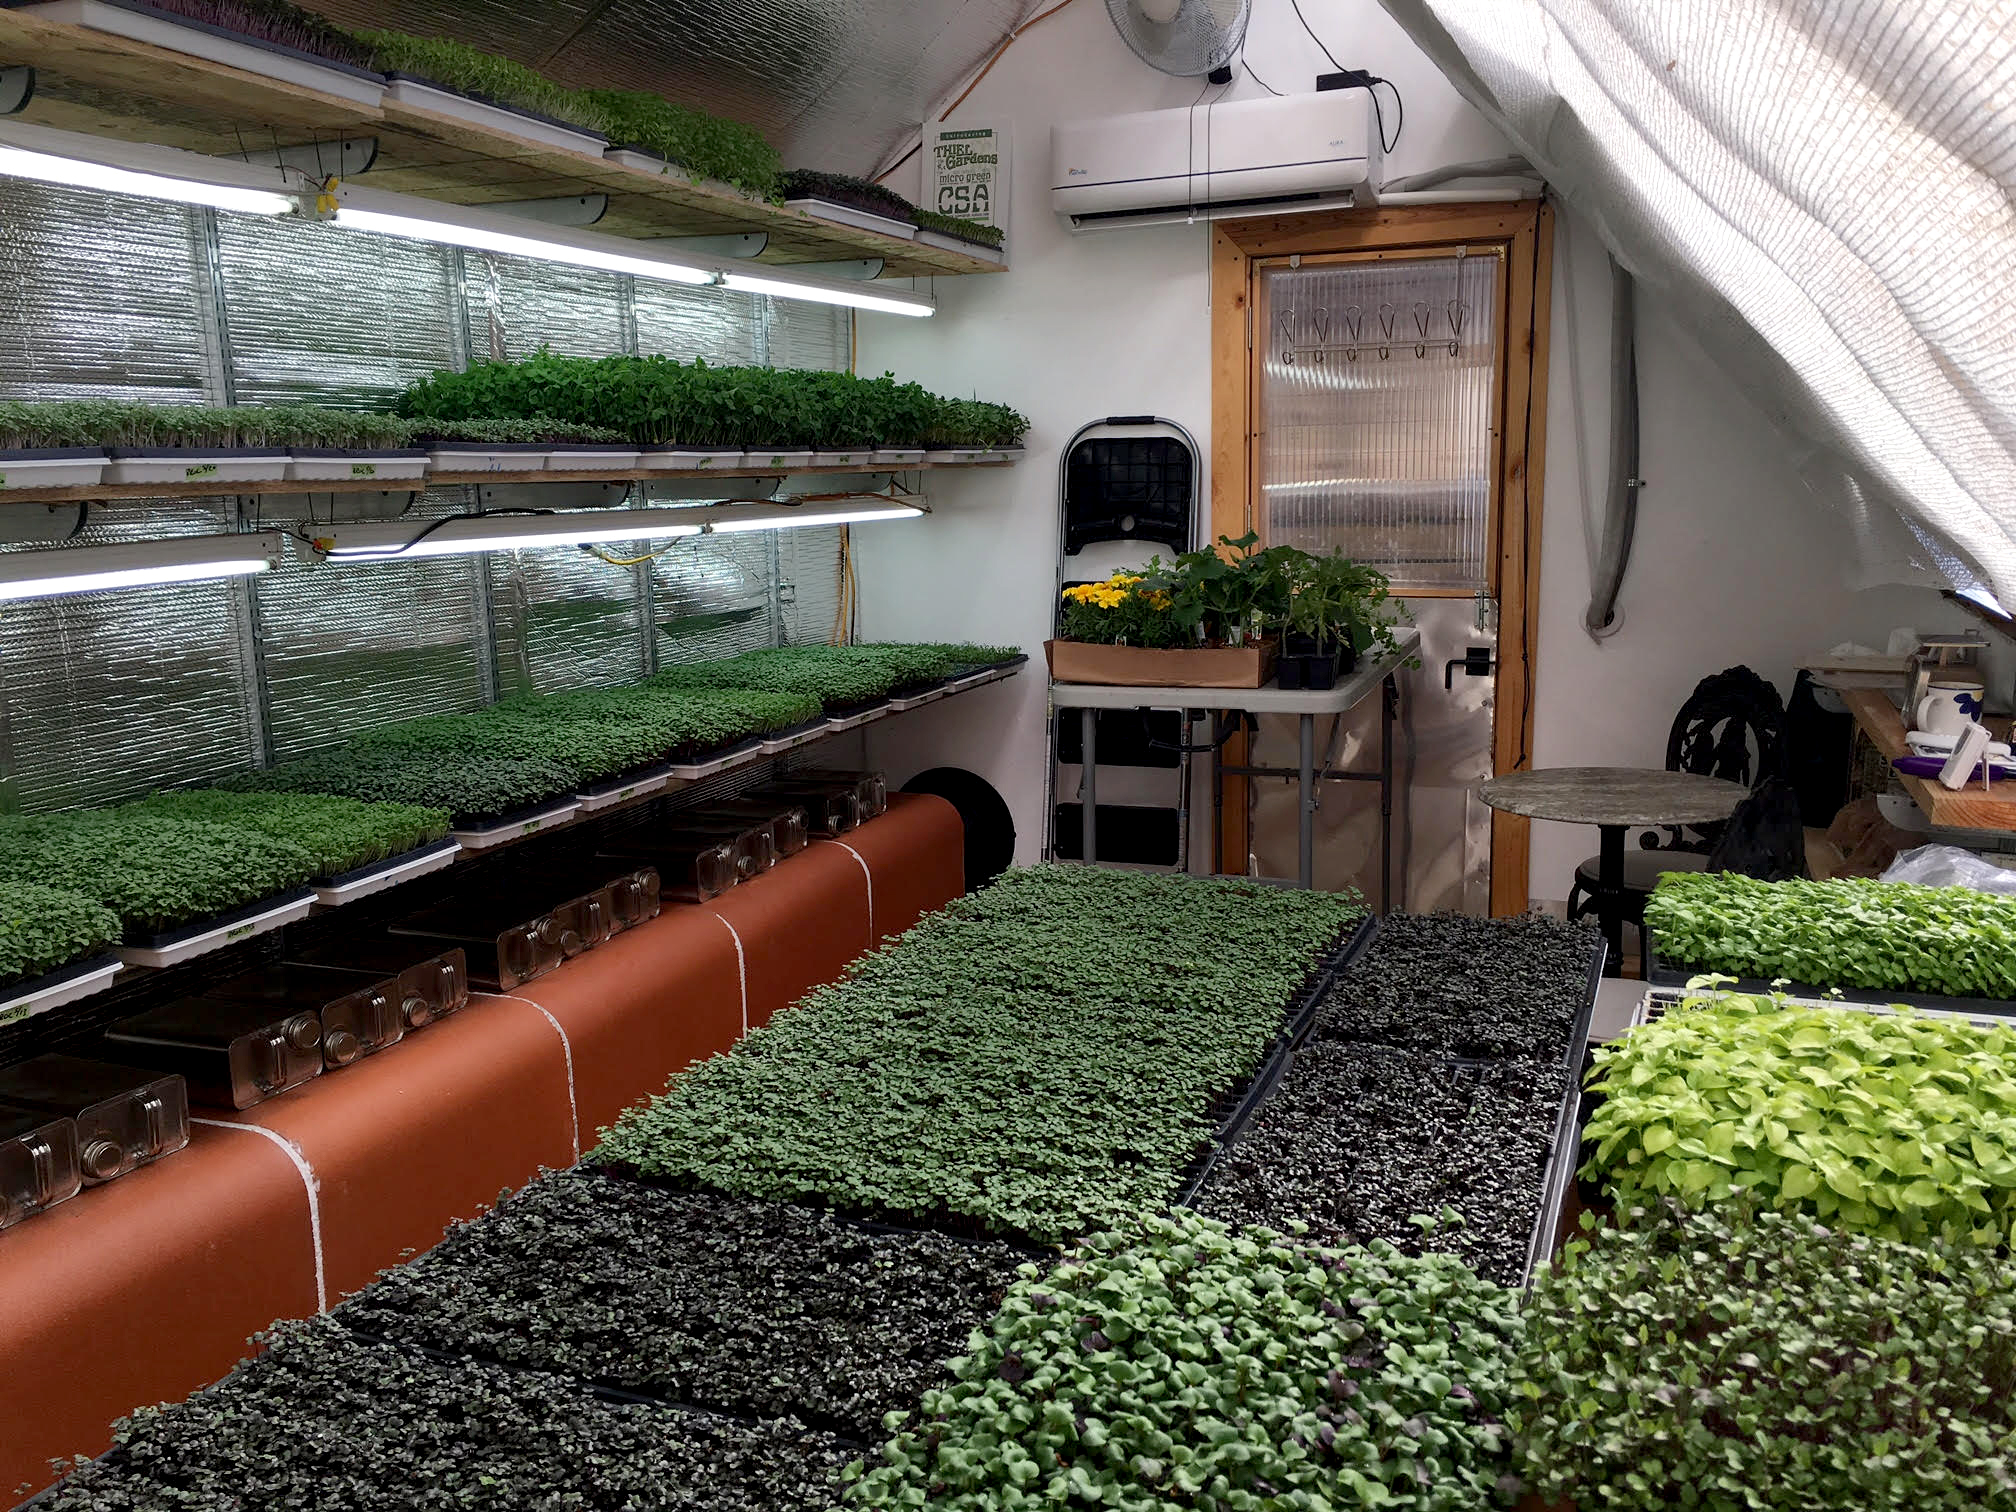 Microgreens can survive in the Thiel Gardens' deep winter greenhouse due to redundant heating methods: Cans of water rest on top of the wood stove exhaust, and the energy efficient mini-split is mounted above the door.